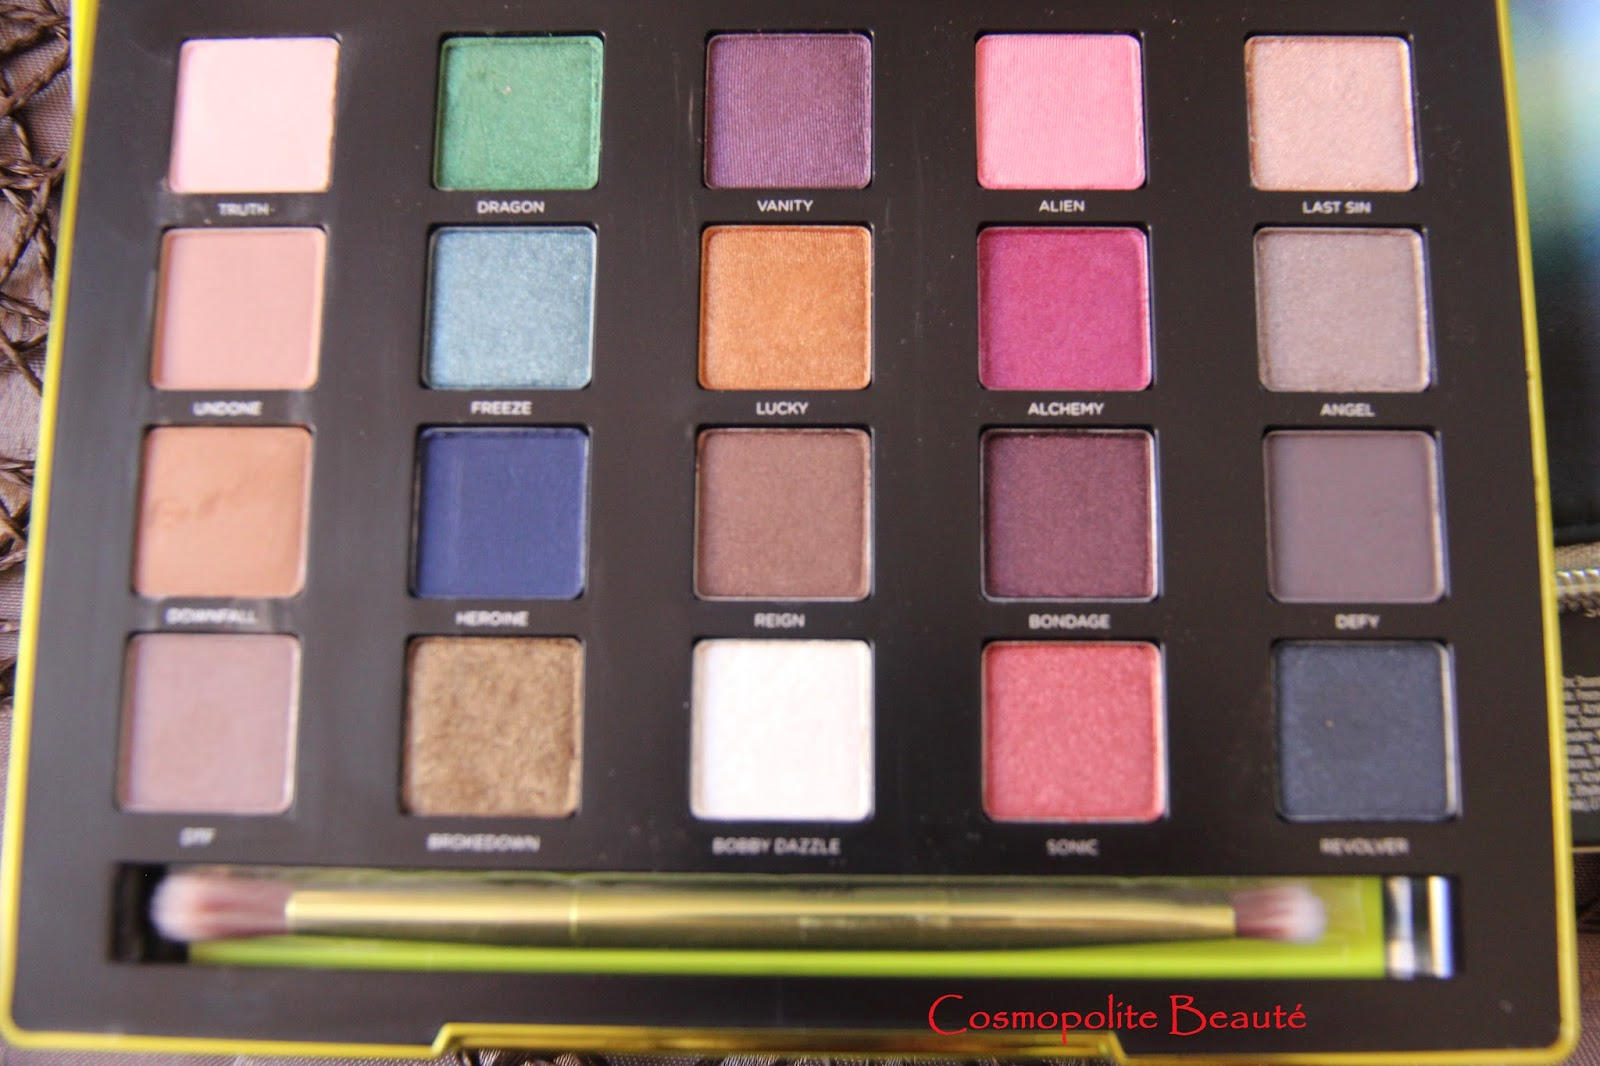 Uban decay, vice 3, swatch, maquillage, palette, fards à paupieres, eye shadow, make up,